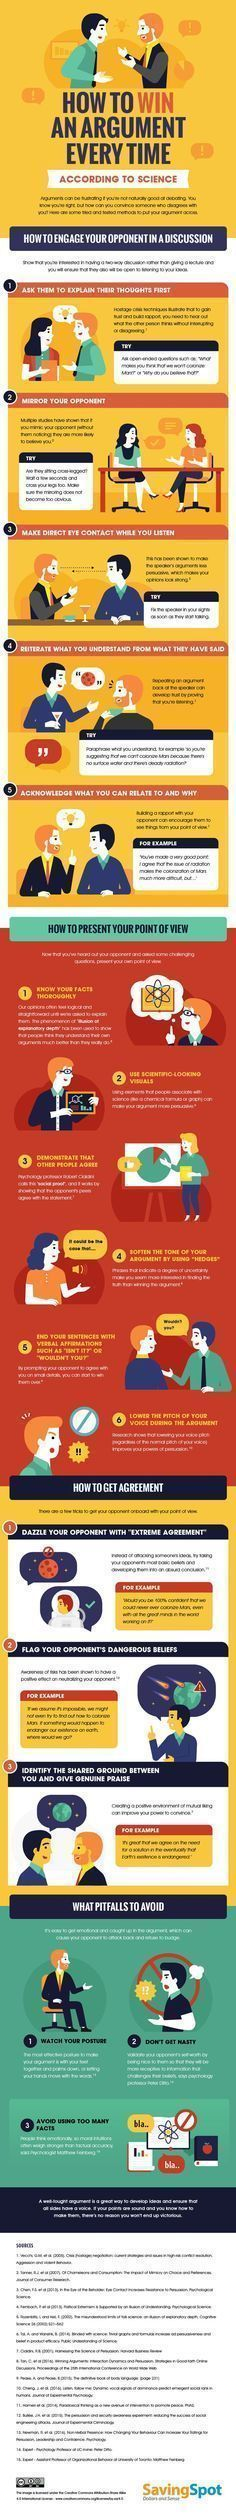 Assertiveness techniques Infographic #homeschoolingfacts #meditationinfographic